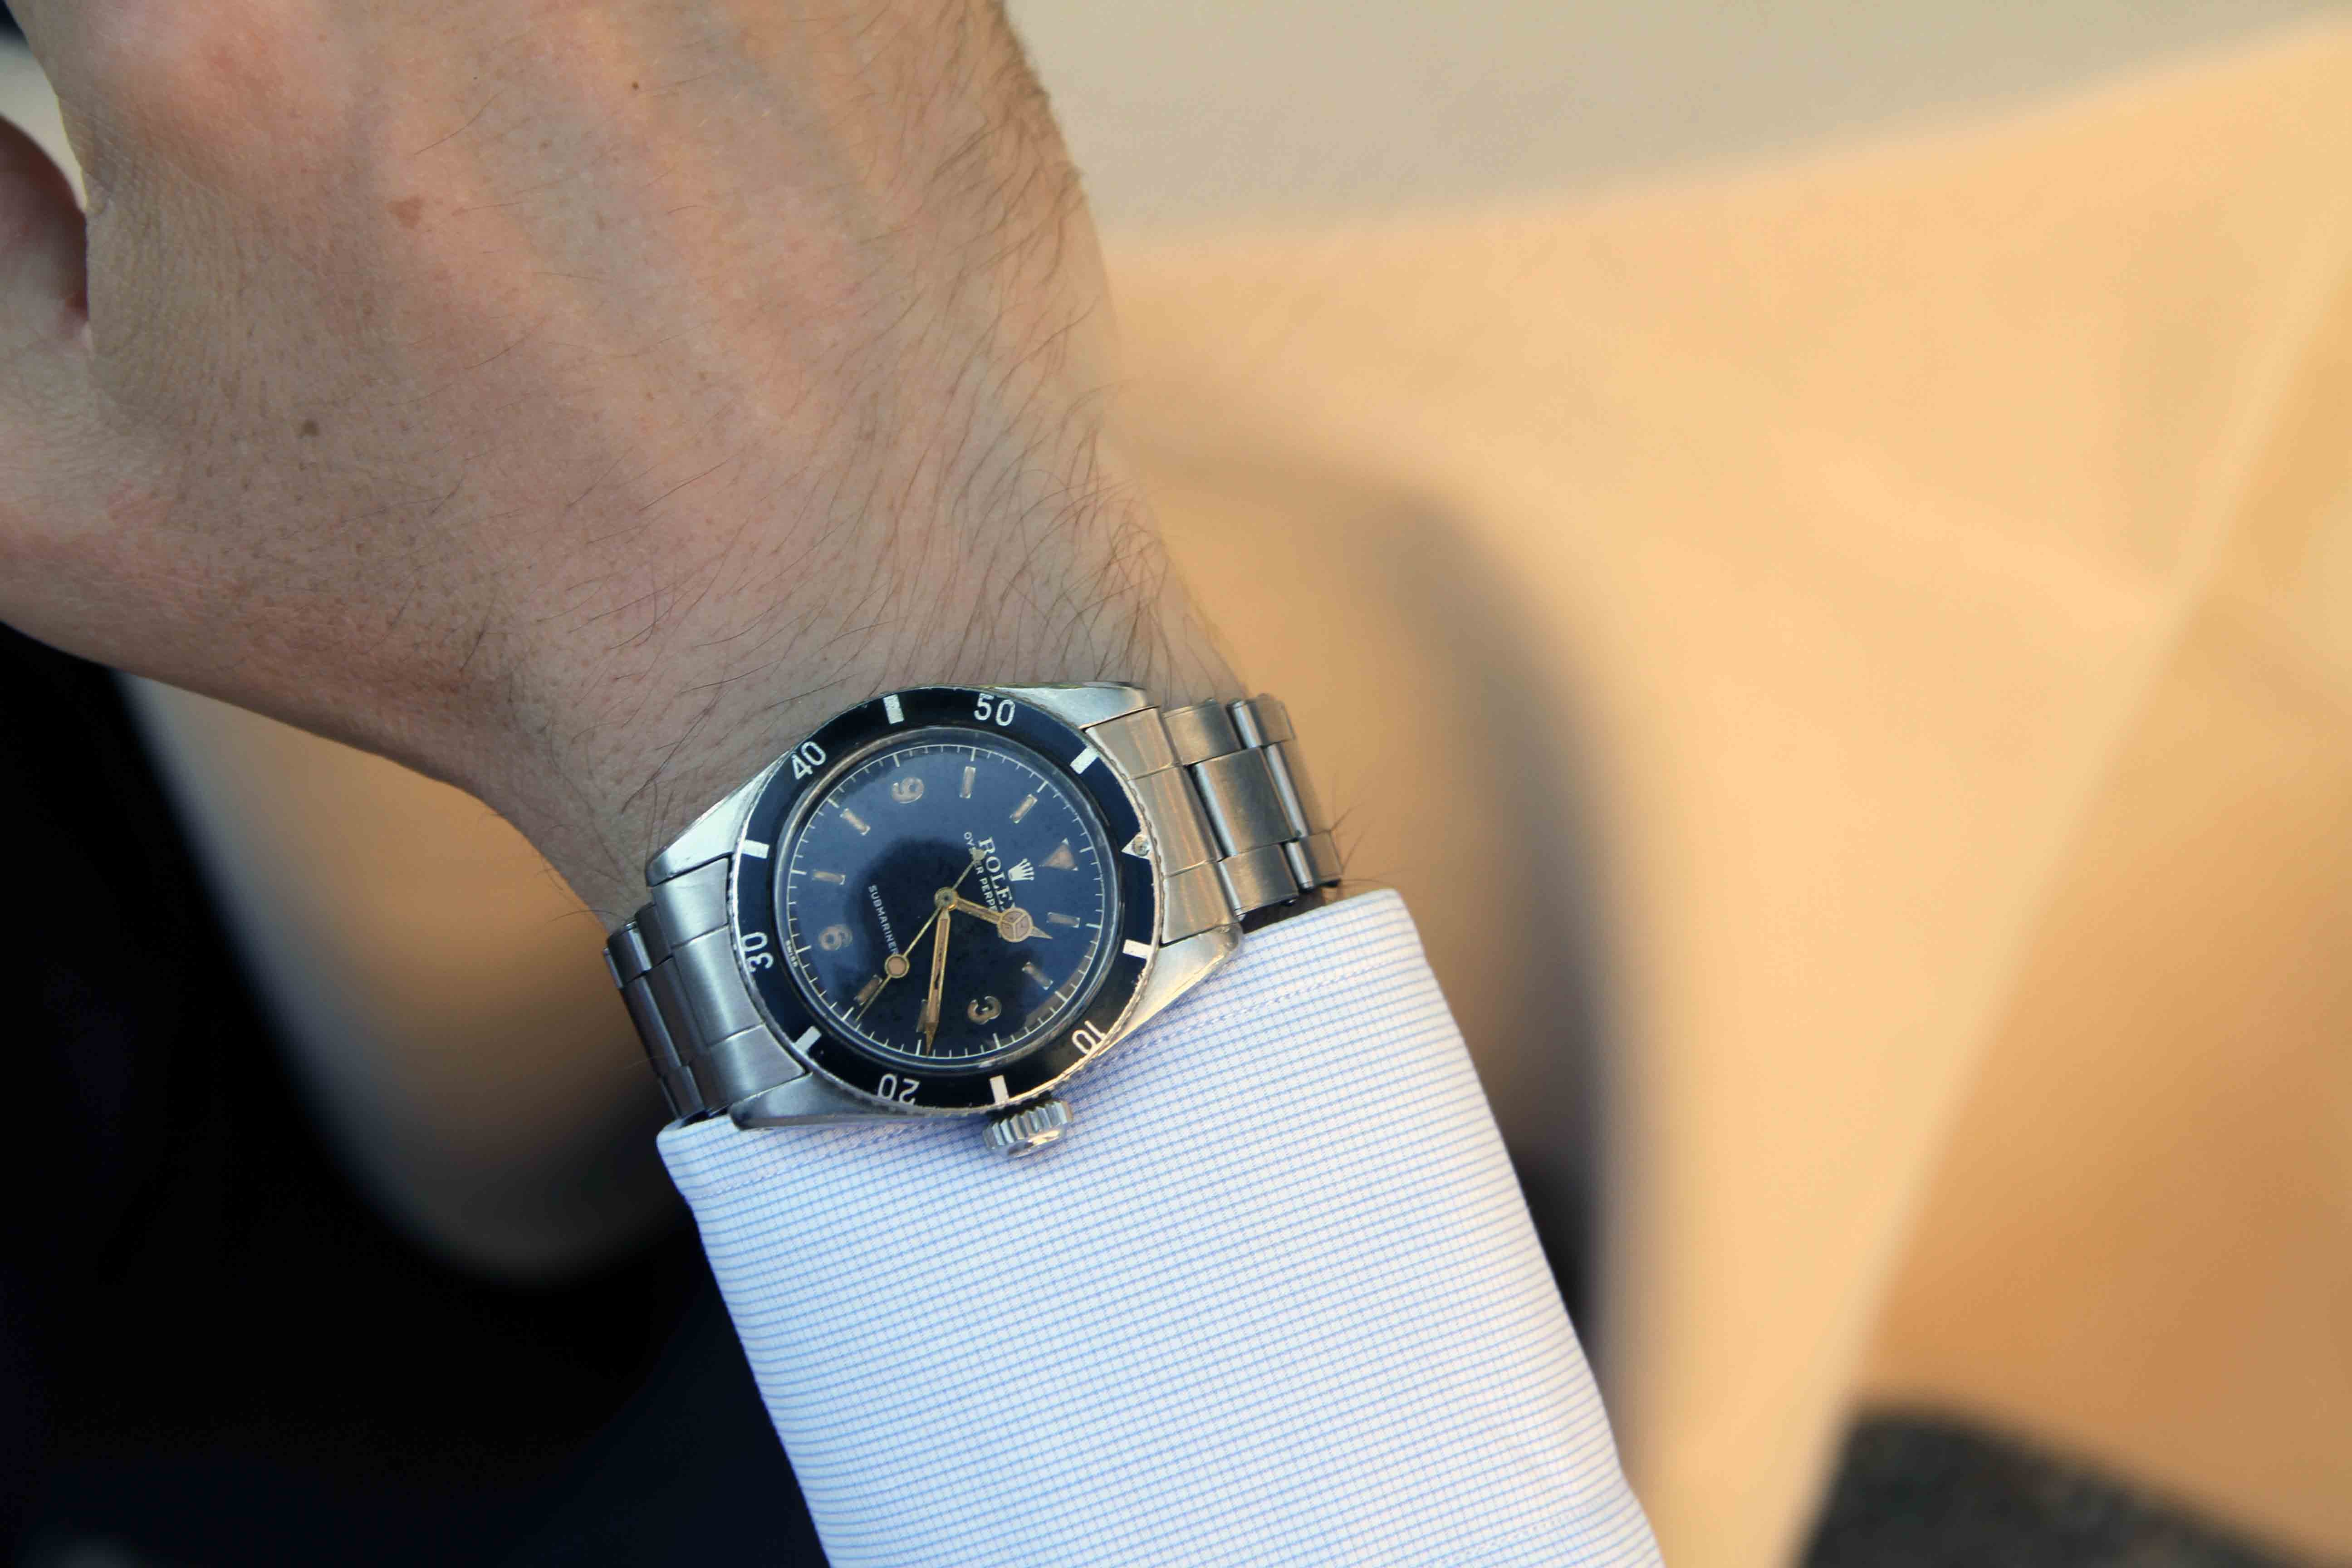 Rolex Submariner reference 6200. Photo Report: Watch And Car Spotting At The 2016 Concorso d'Eleganza Villa d'Este With A. Lange & Söhne Photo Report: Watch And Car Spotting At The 2016 Concorso d'Eleganza Villa d'Este With A. Lange & Söhne 2